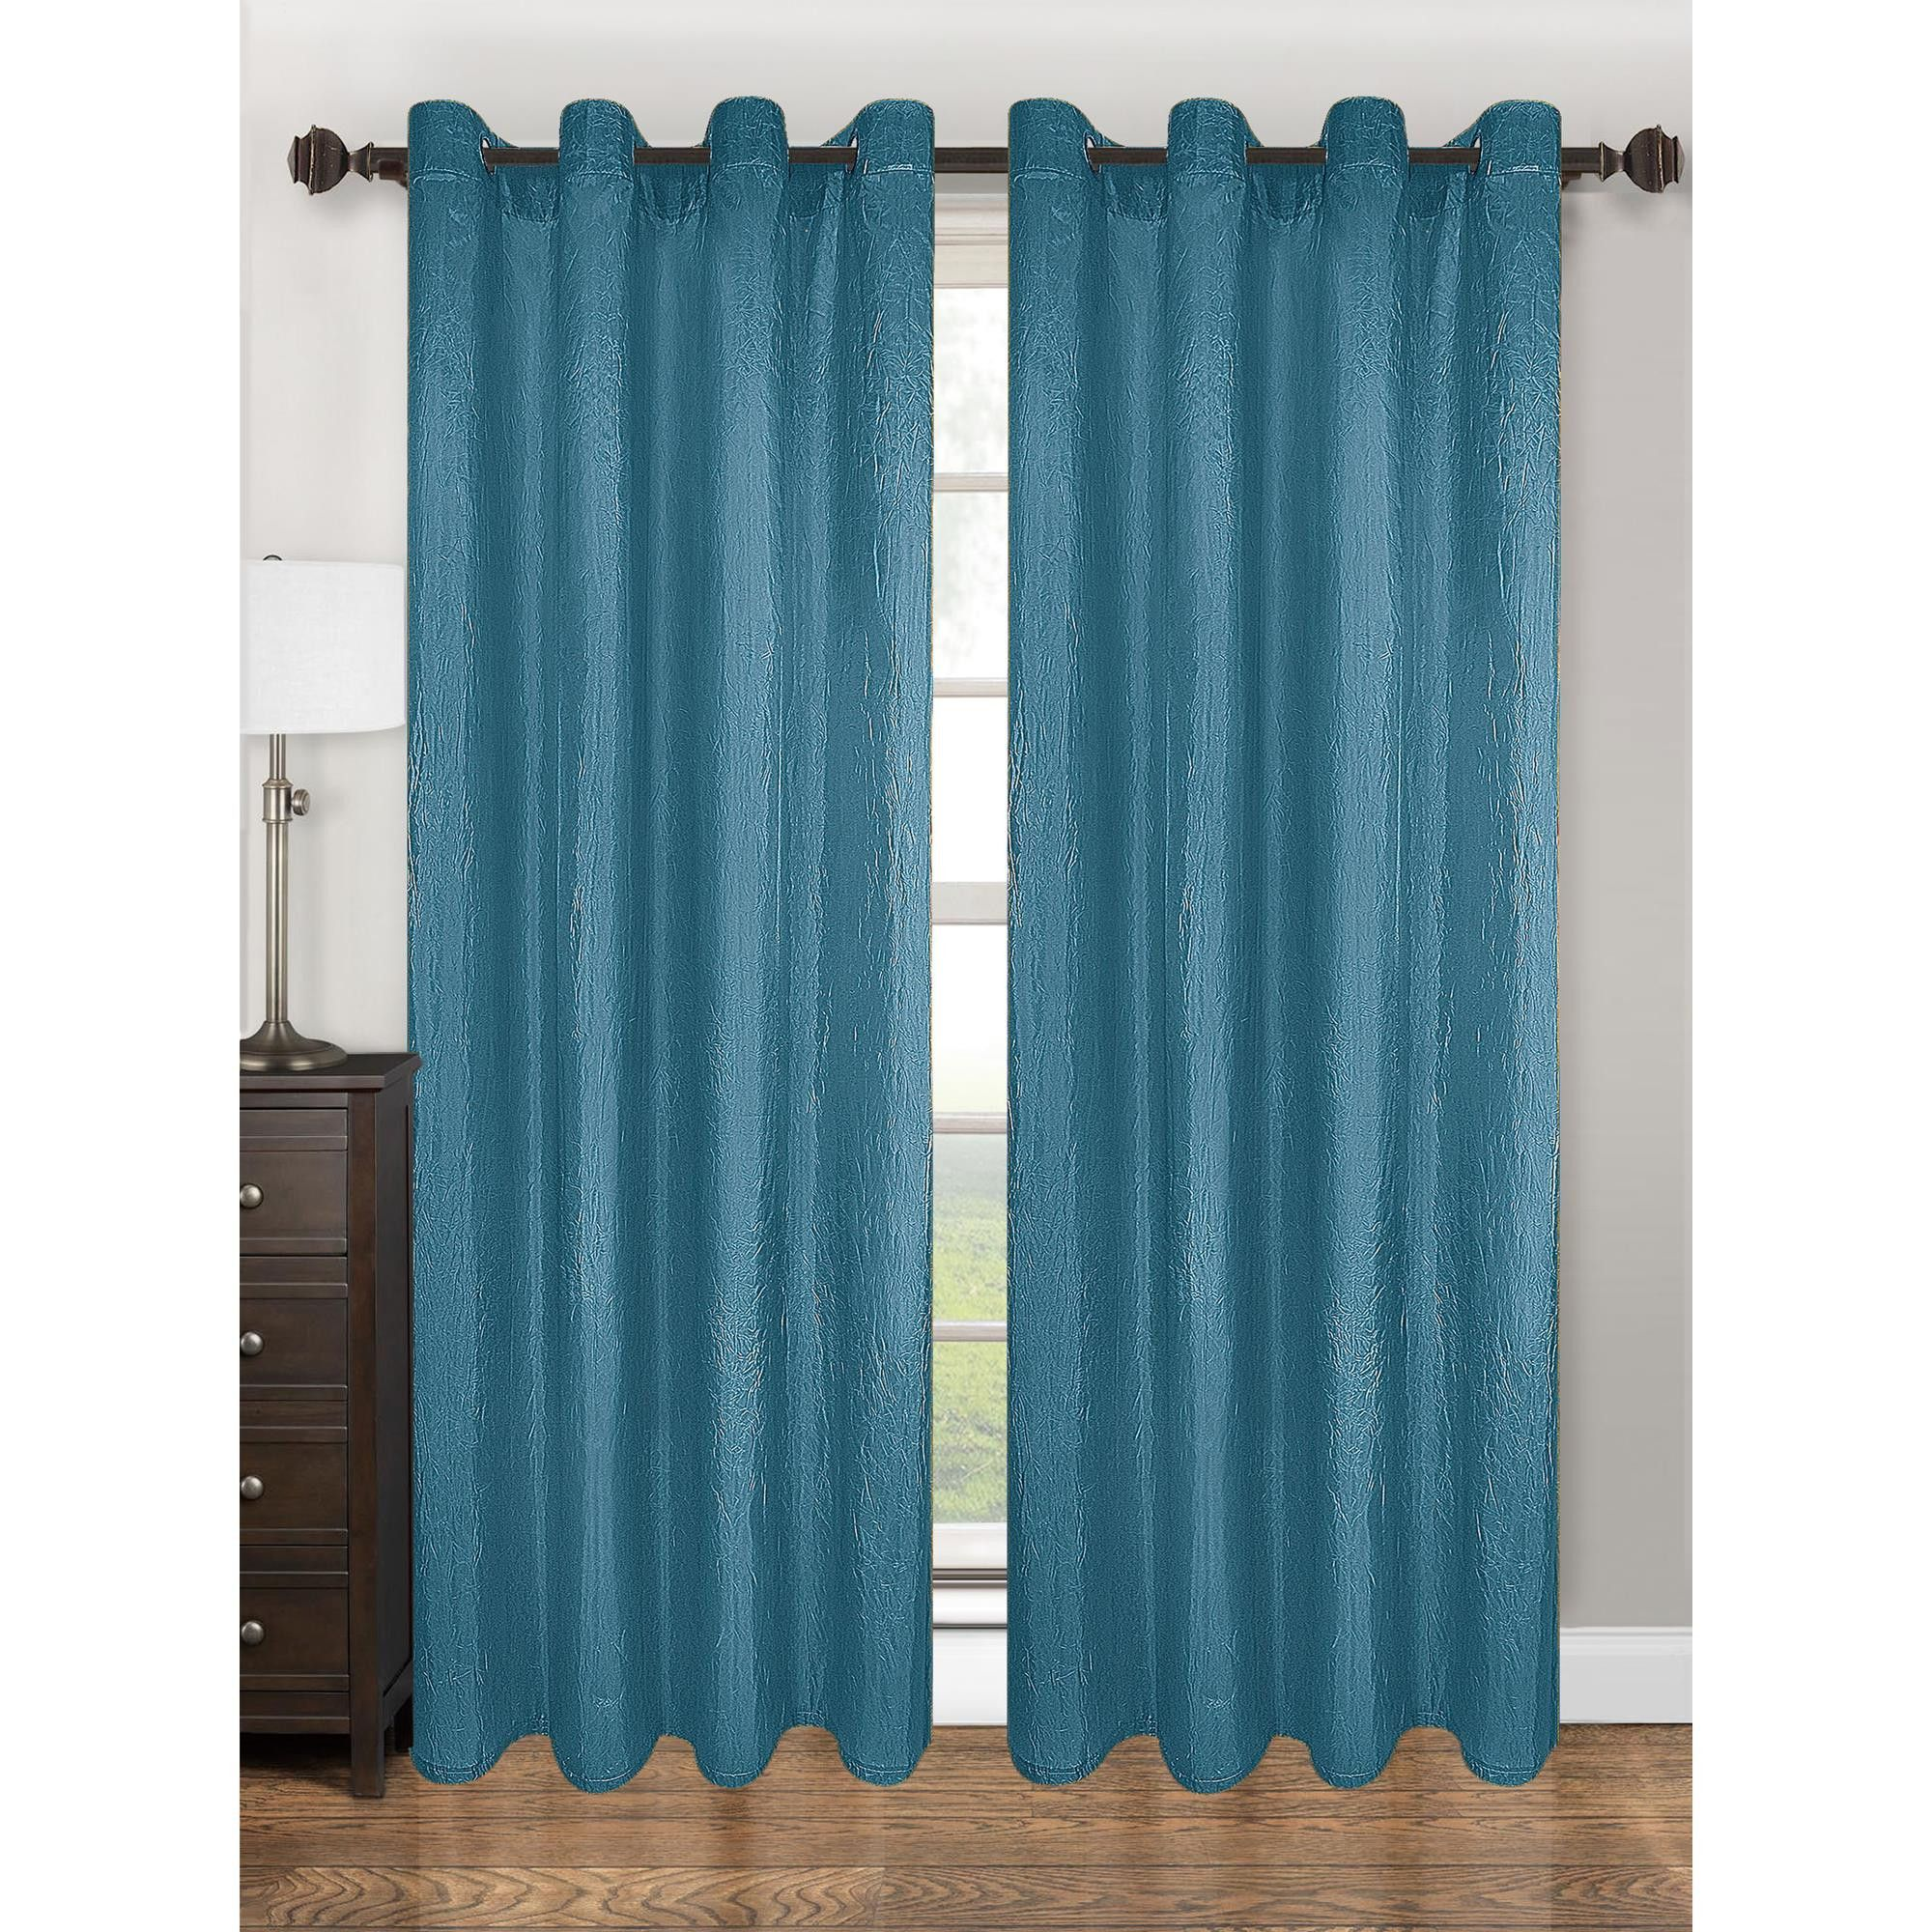 Kashi home claire x crushed taffeta with grommet top curtain